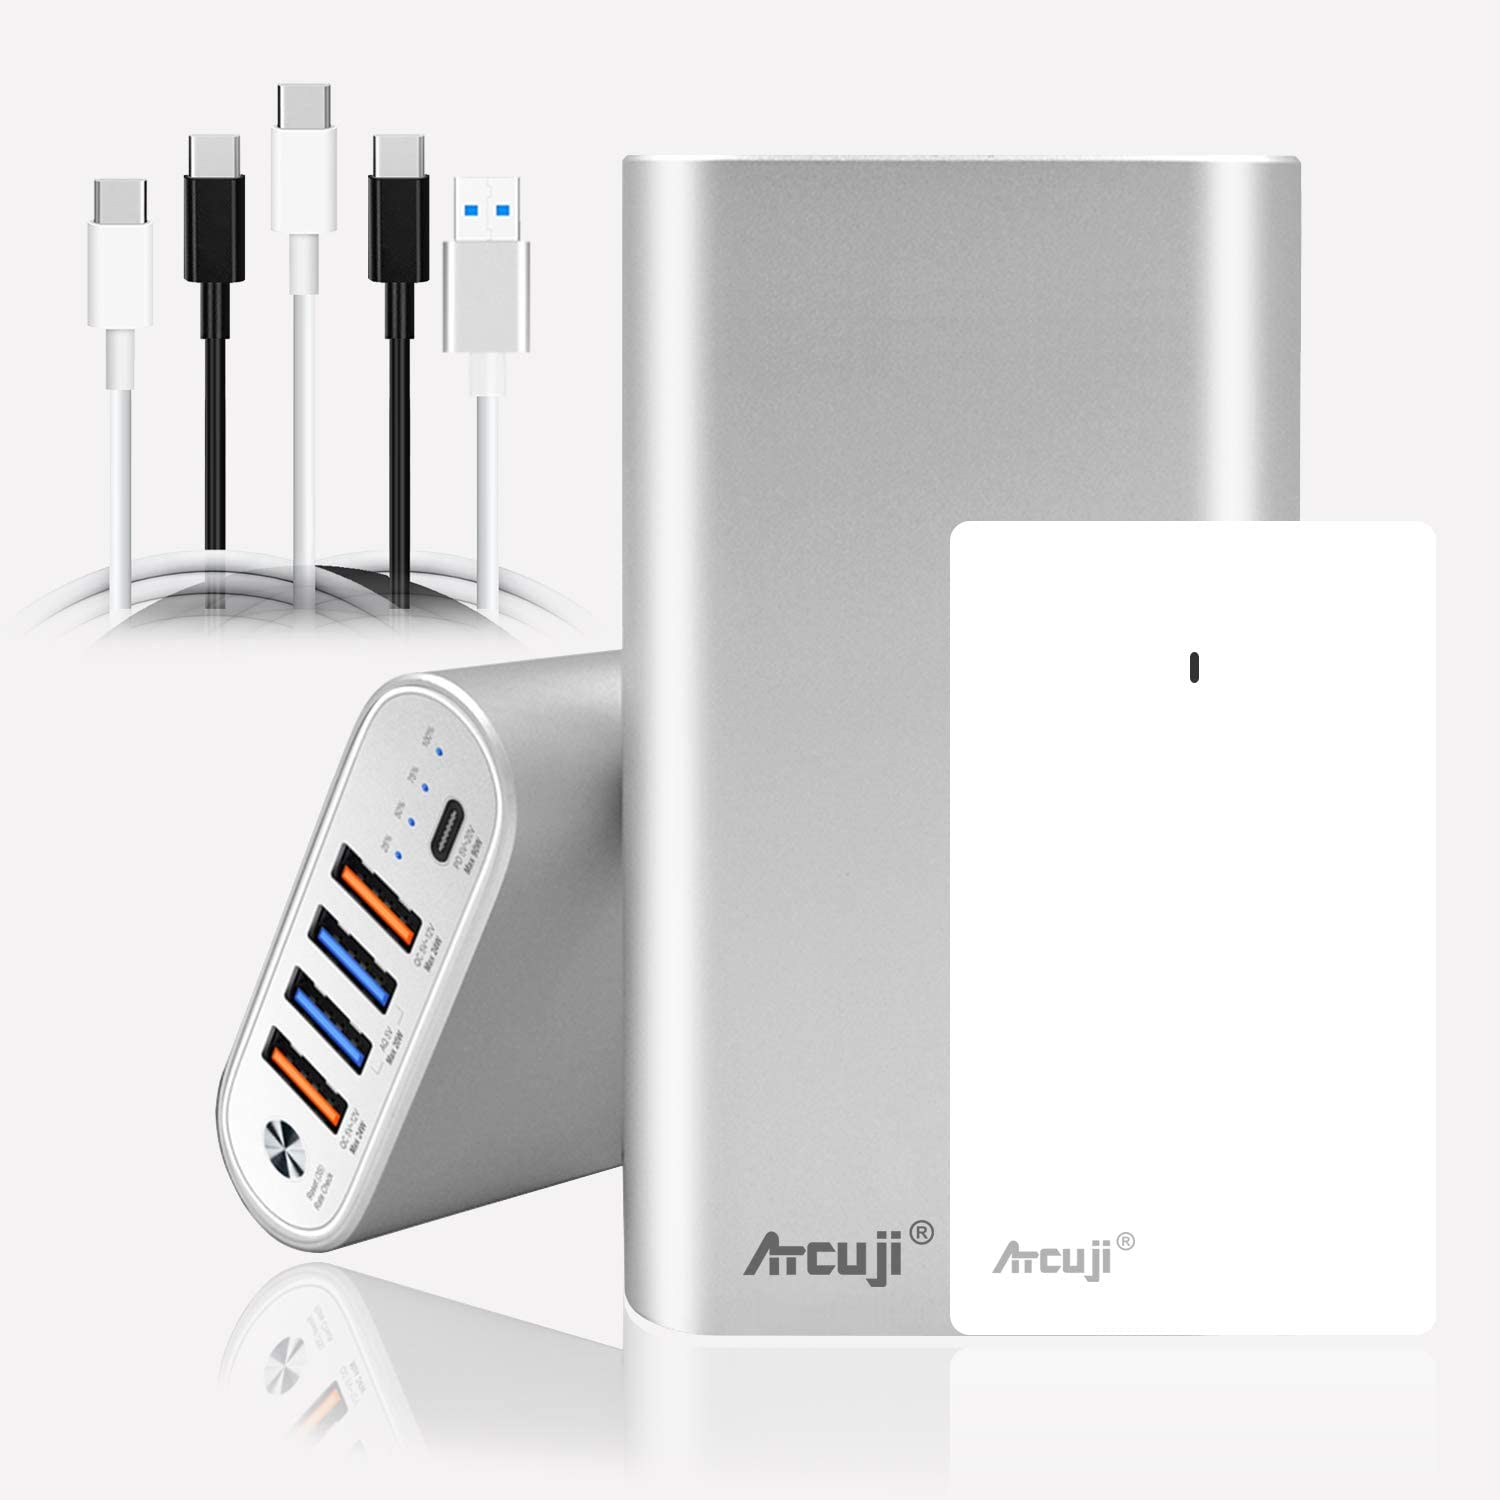 Atcuji 26800mAh USB C 90W External Battery and USB-C 90W Power Adapater, PD Power Bank with 90W Power Delivery, Portable Charger for MacBook Pro/Air Surface Book 2 Pro X 7 HP Dell laptop(TSA-Approved)